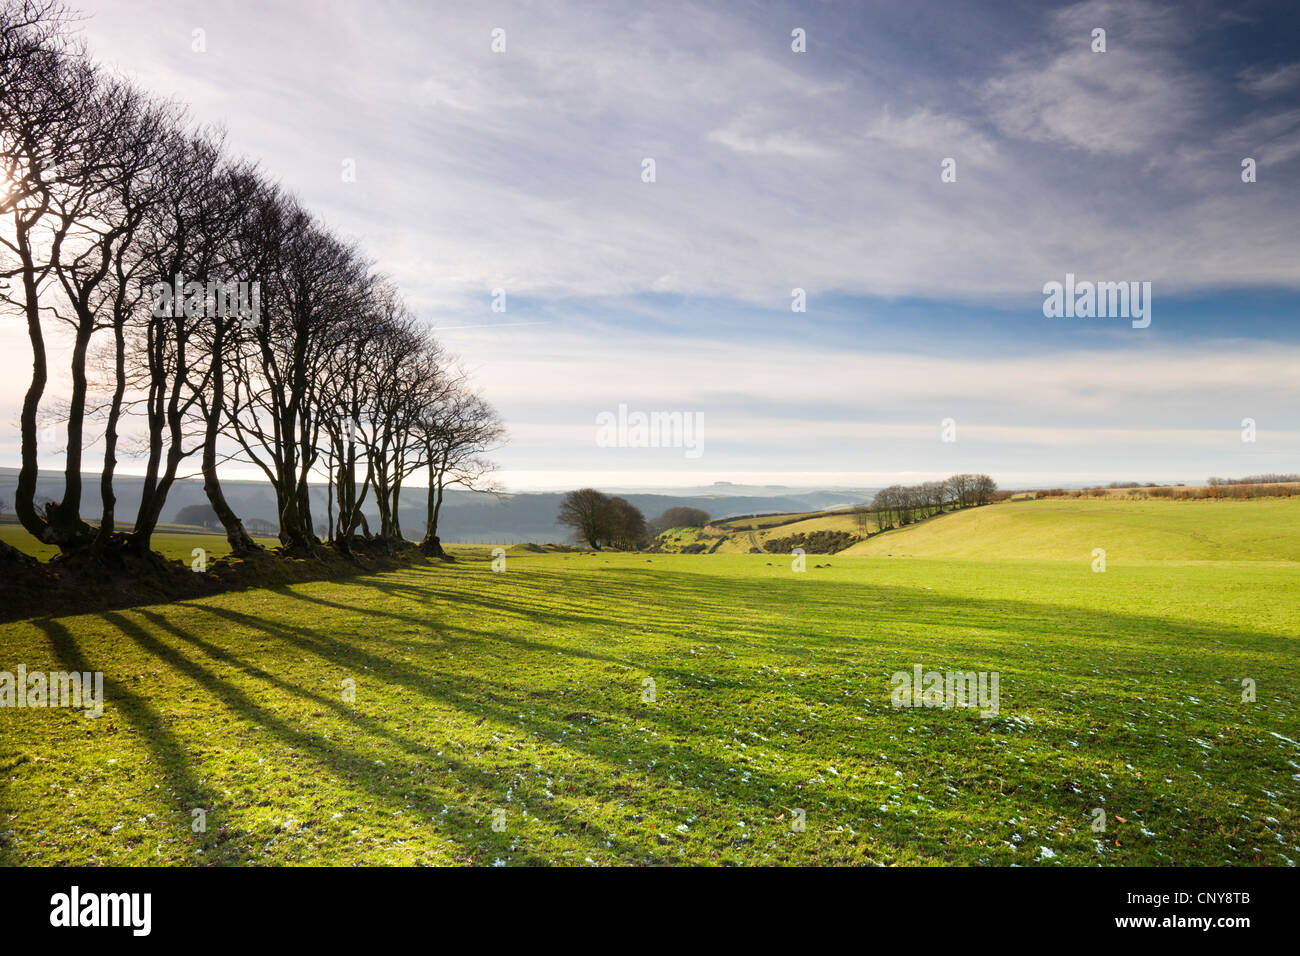 Beech tree hedge in Exmoor National Park, Devon, England. January 2009 - Stock Image